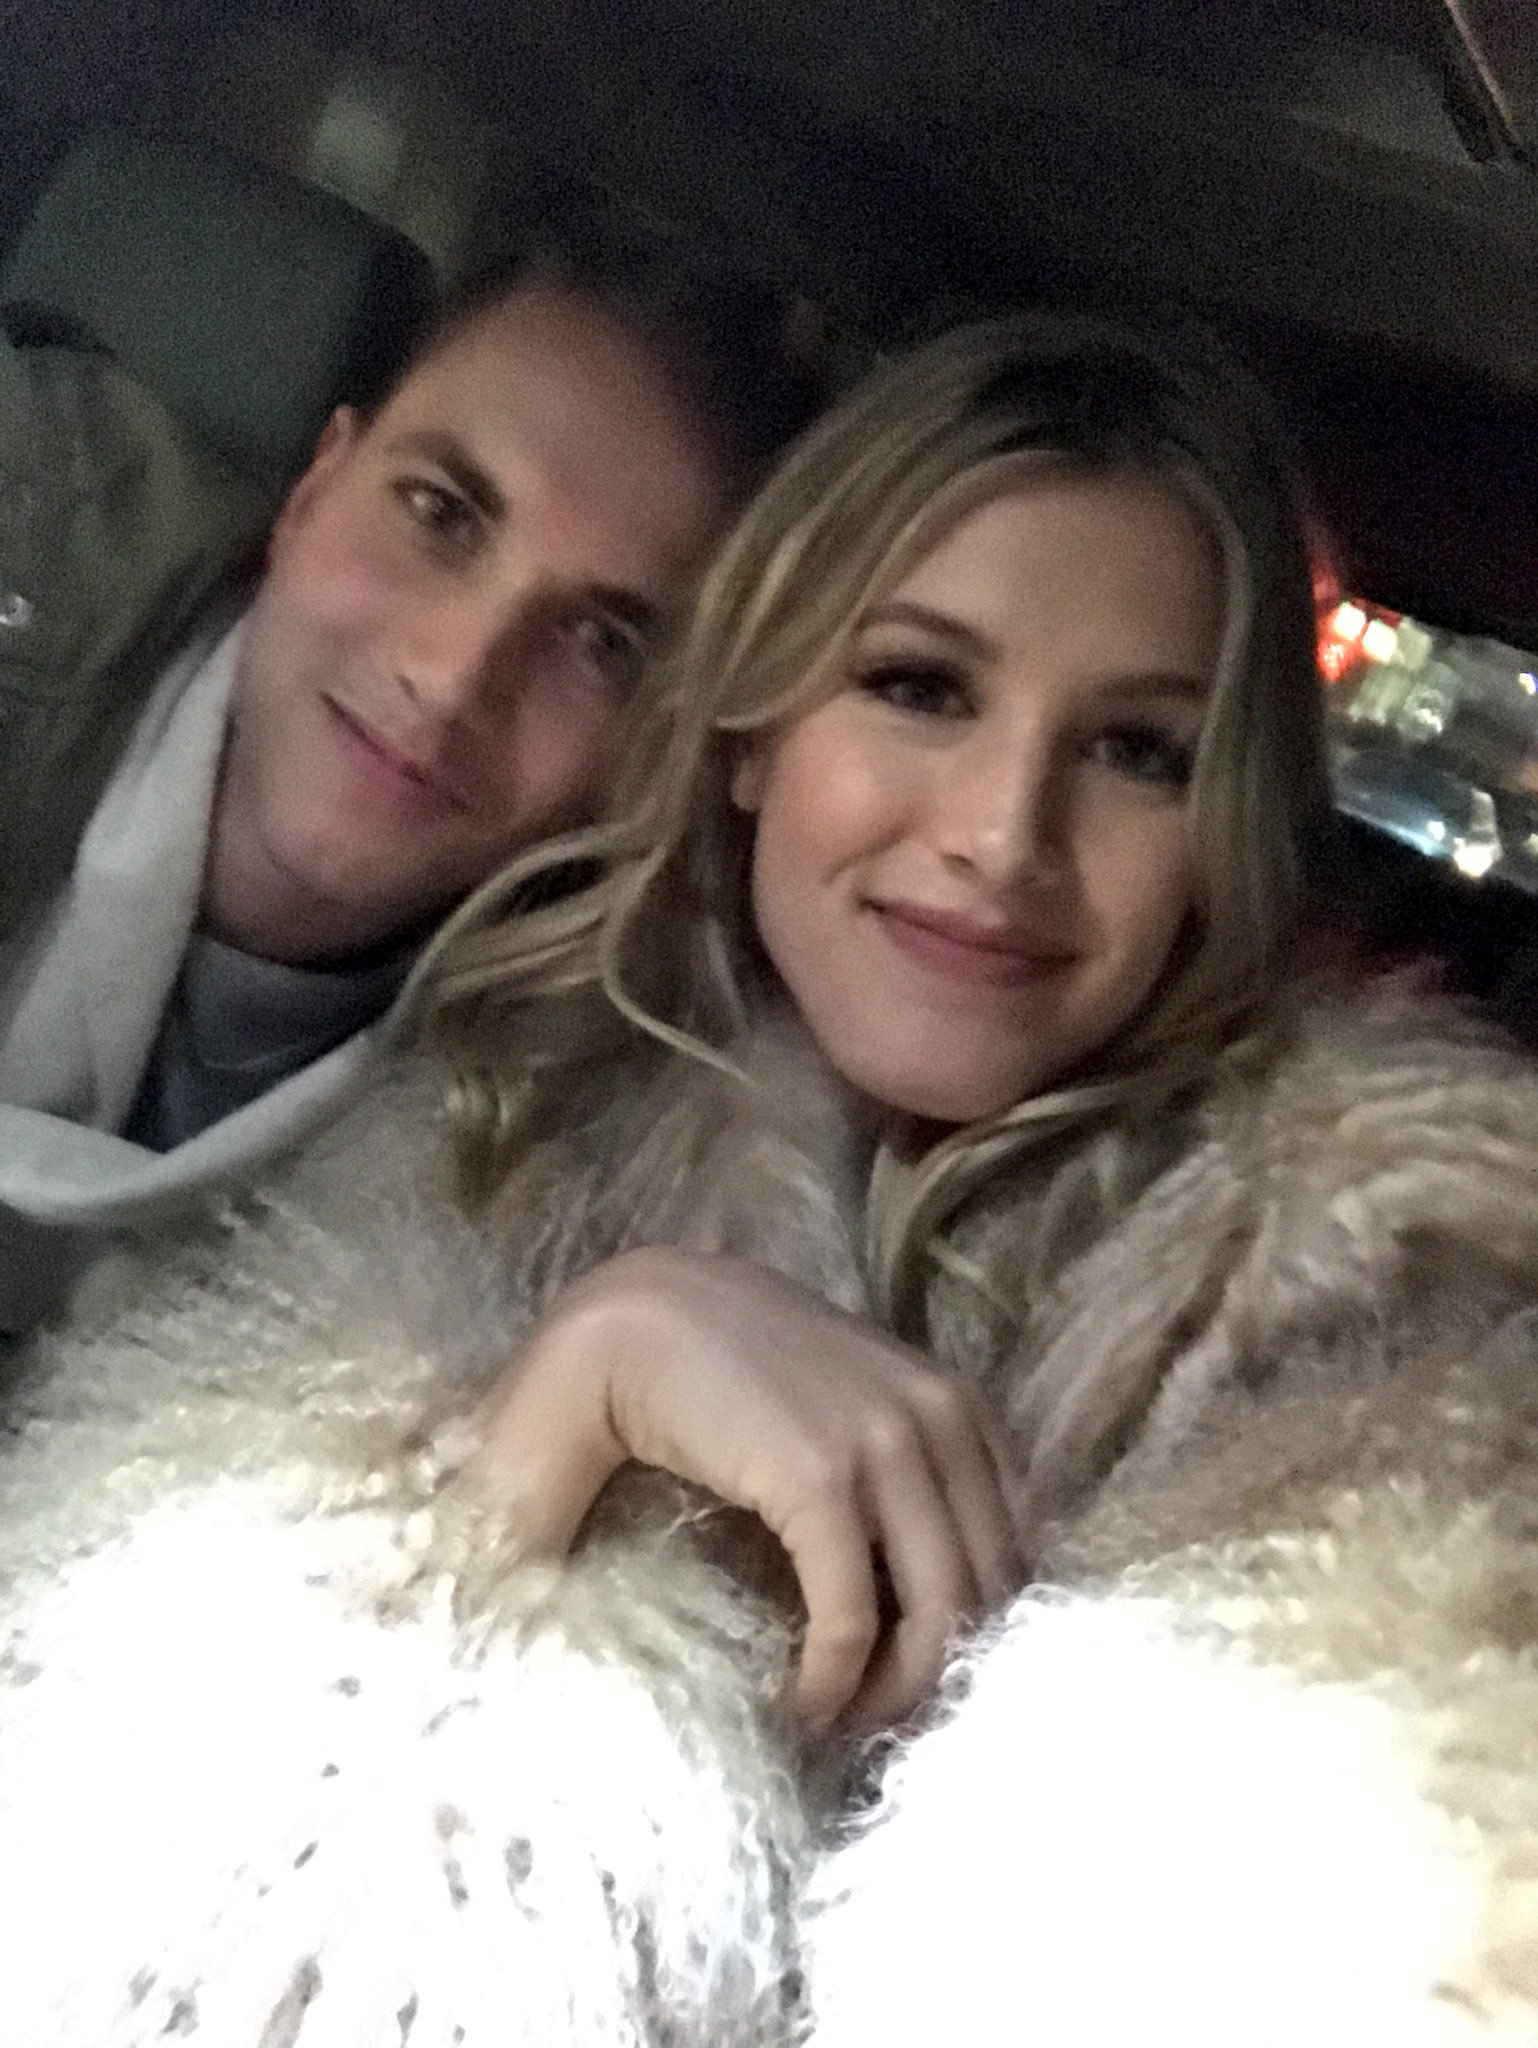 Professional tennis player Genie Bouchard has made good on her deal to go out on a date with a student from the University of Missouri. ( @geniebouchard)